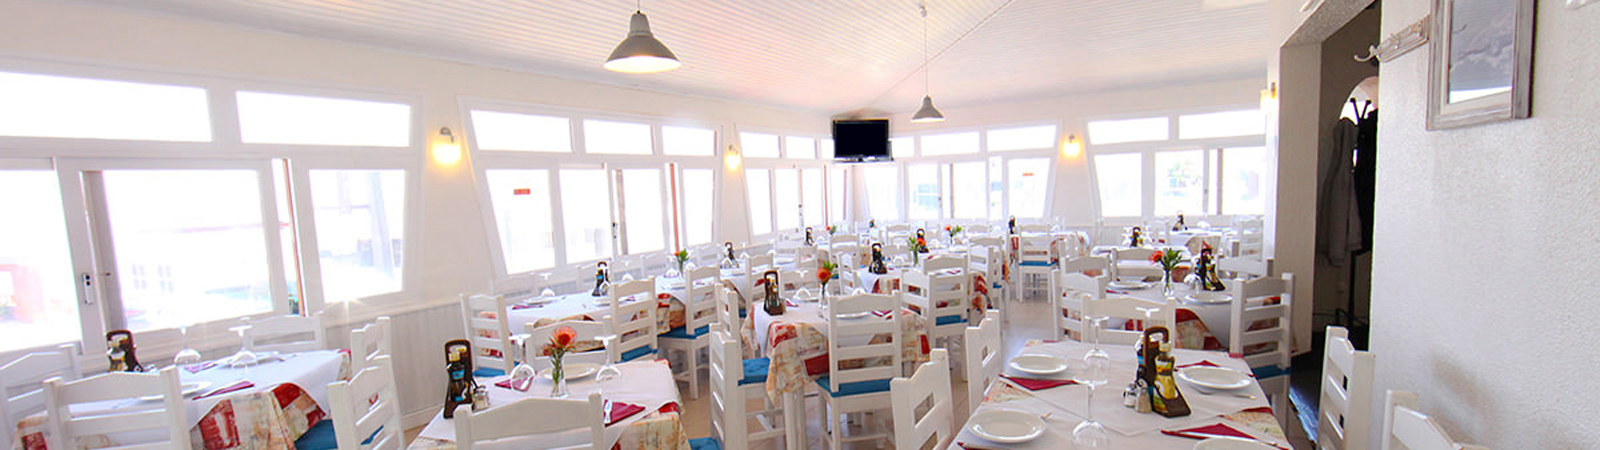 Restaurante Polo Norte - Peixe ou Marisco com vista mar